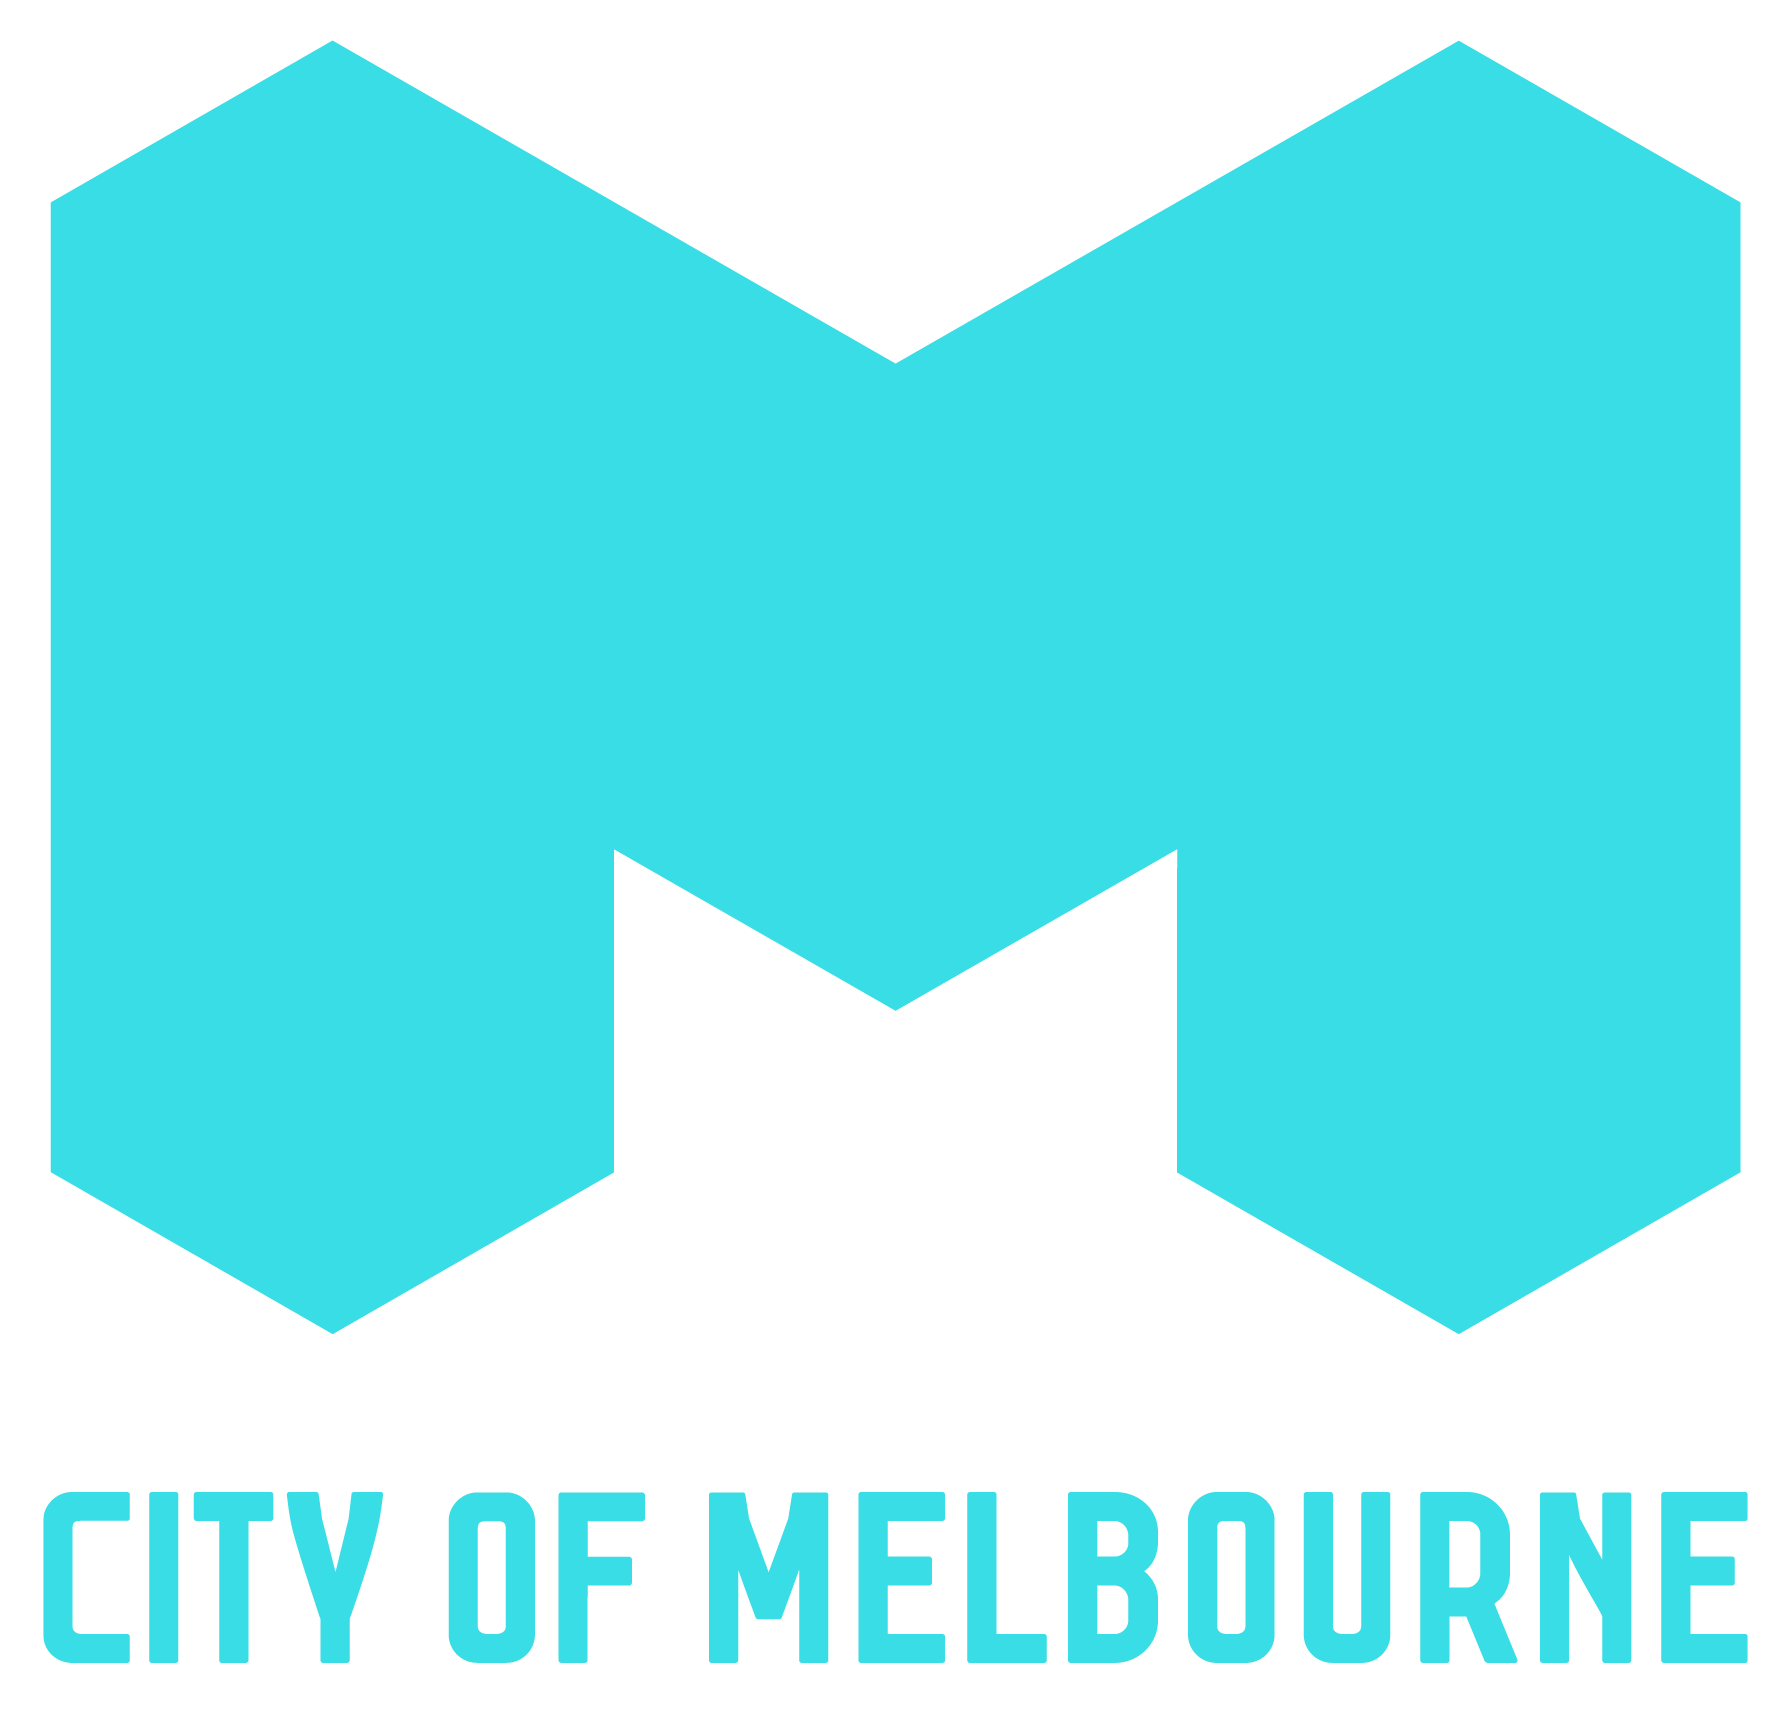 cityofmelbourne-01.png